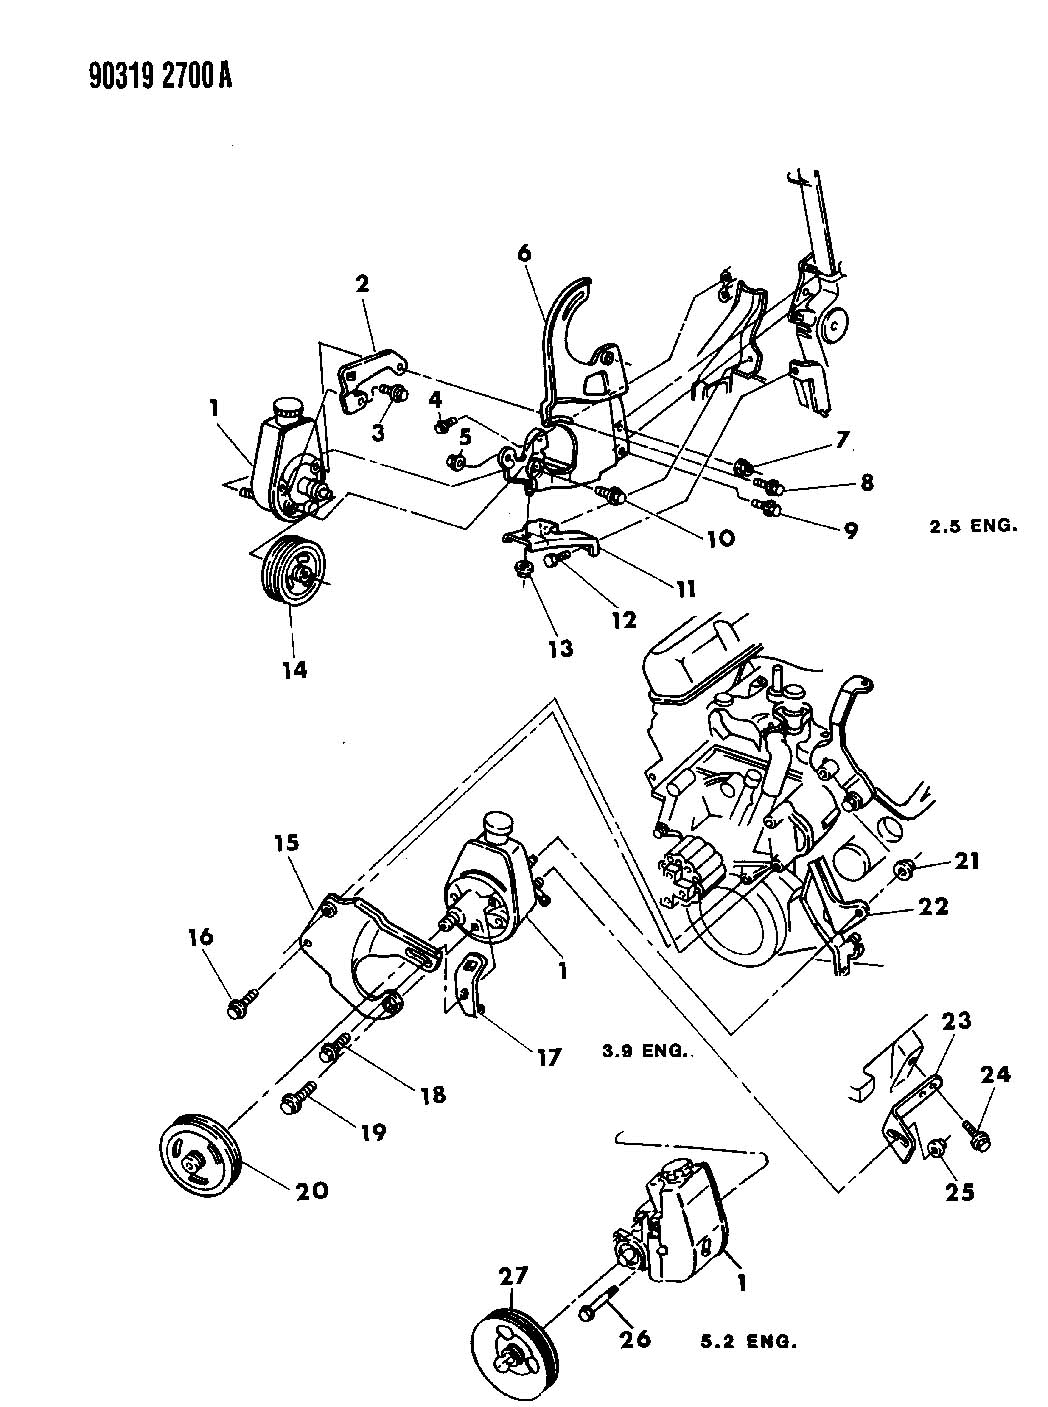 Fuel Pump Wiring Diagram 240sx, Fuel, Free Engine Image